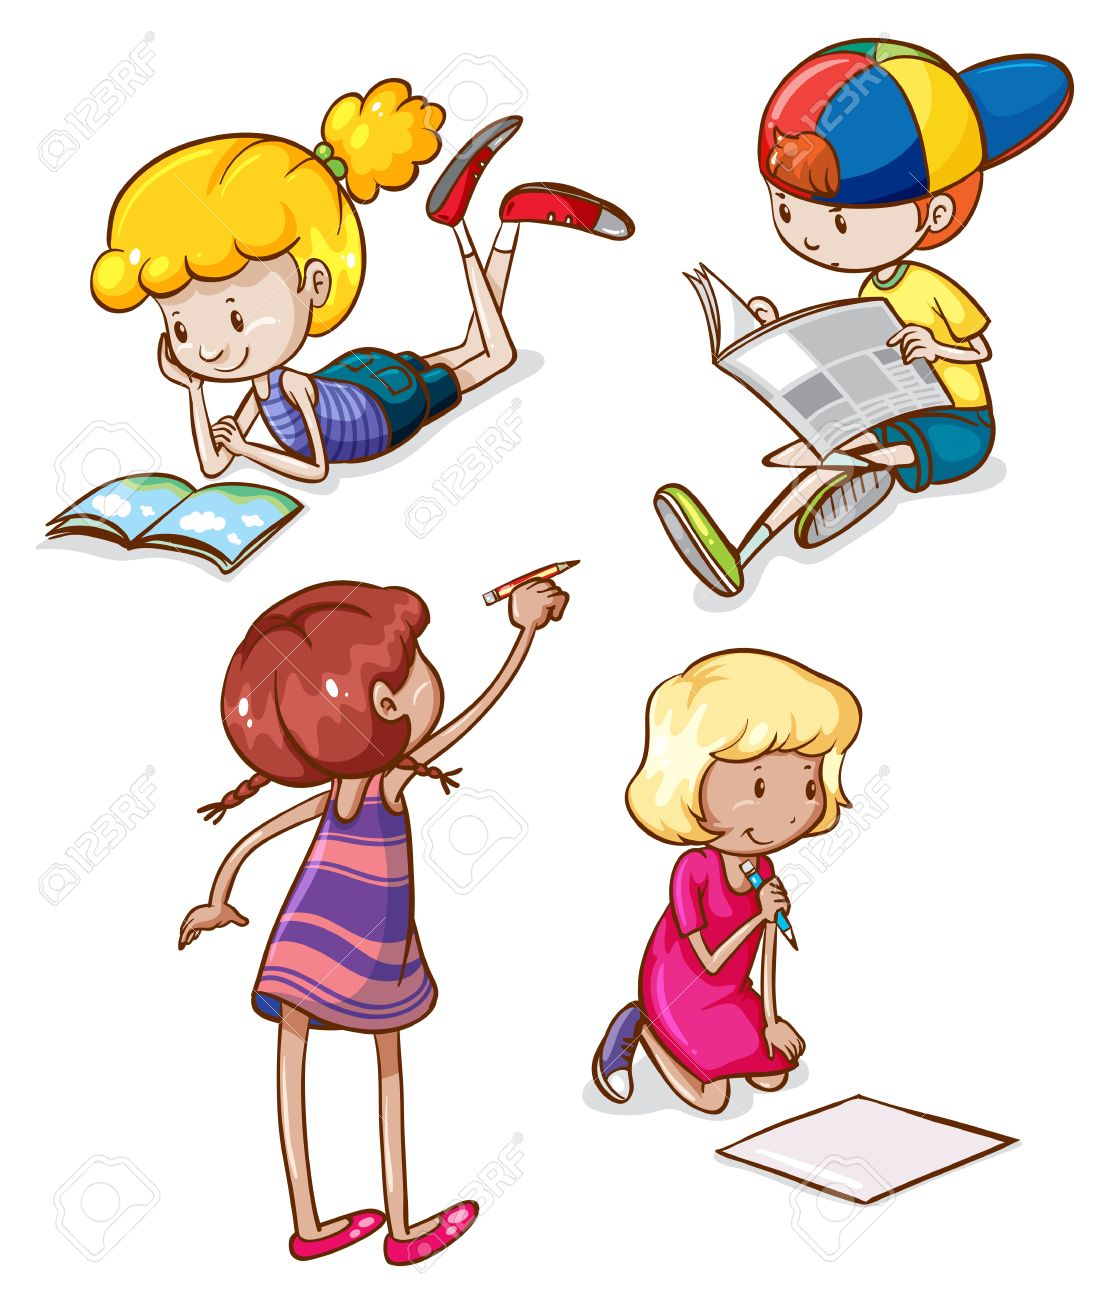 Uncategorized Simple Sketches For Kids illustration of the simple sketches kids reading and writing on a white background stock vector